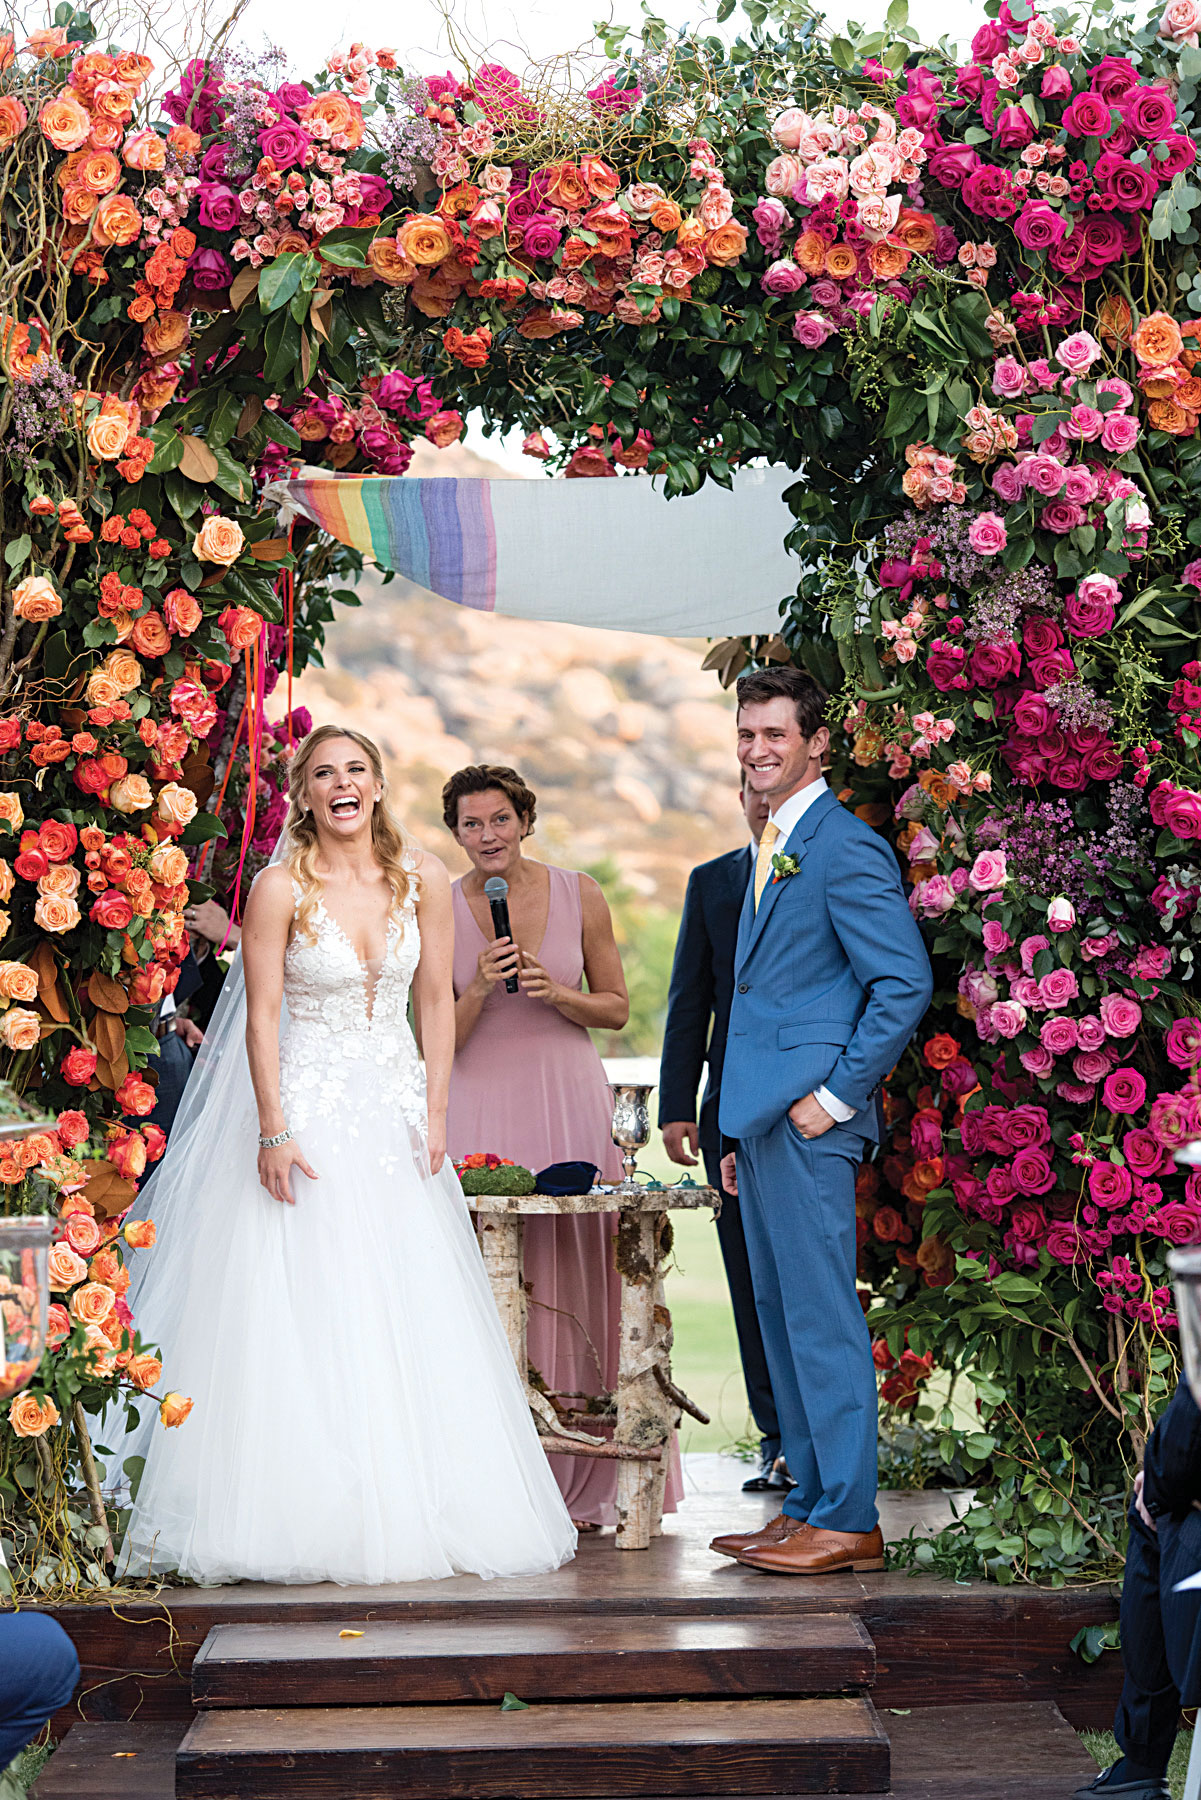 colorful wedding ceremony with flower chuppah ombre pink and orange flowers